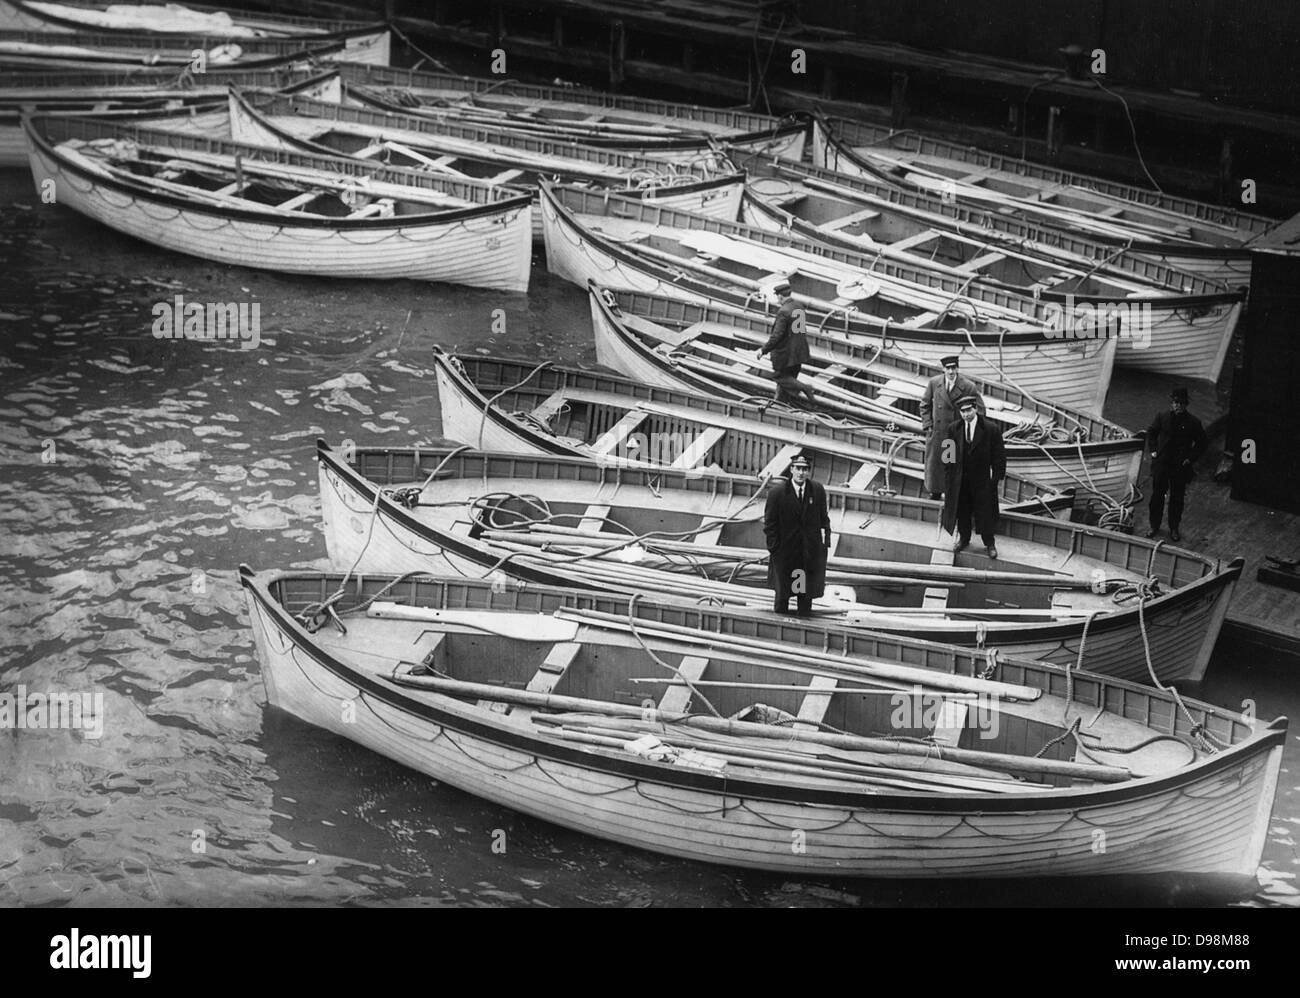 life Boats from the Titanic 1912 - Stock Image